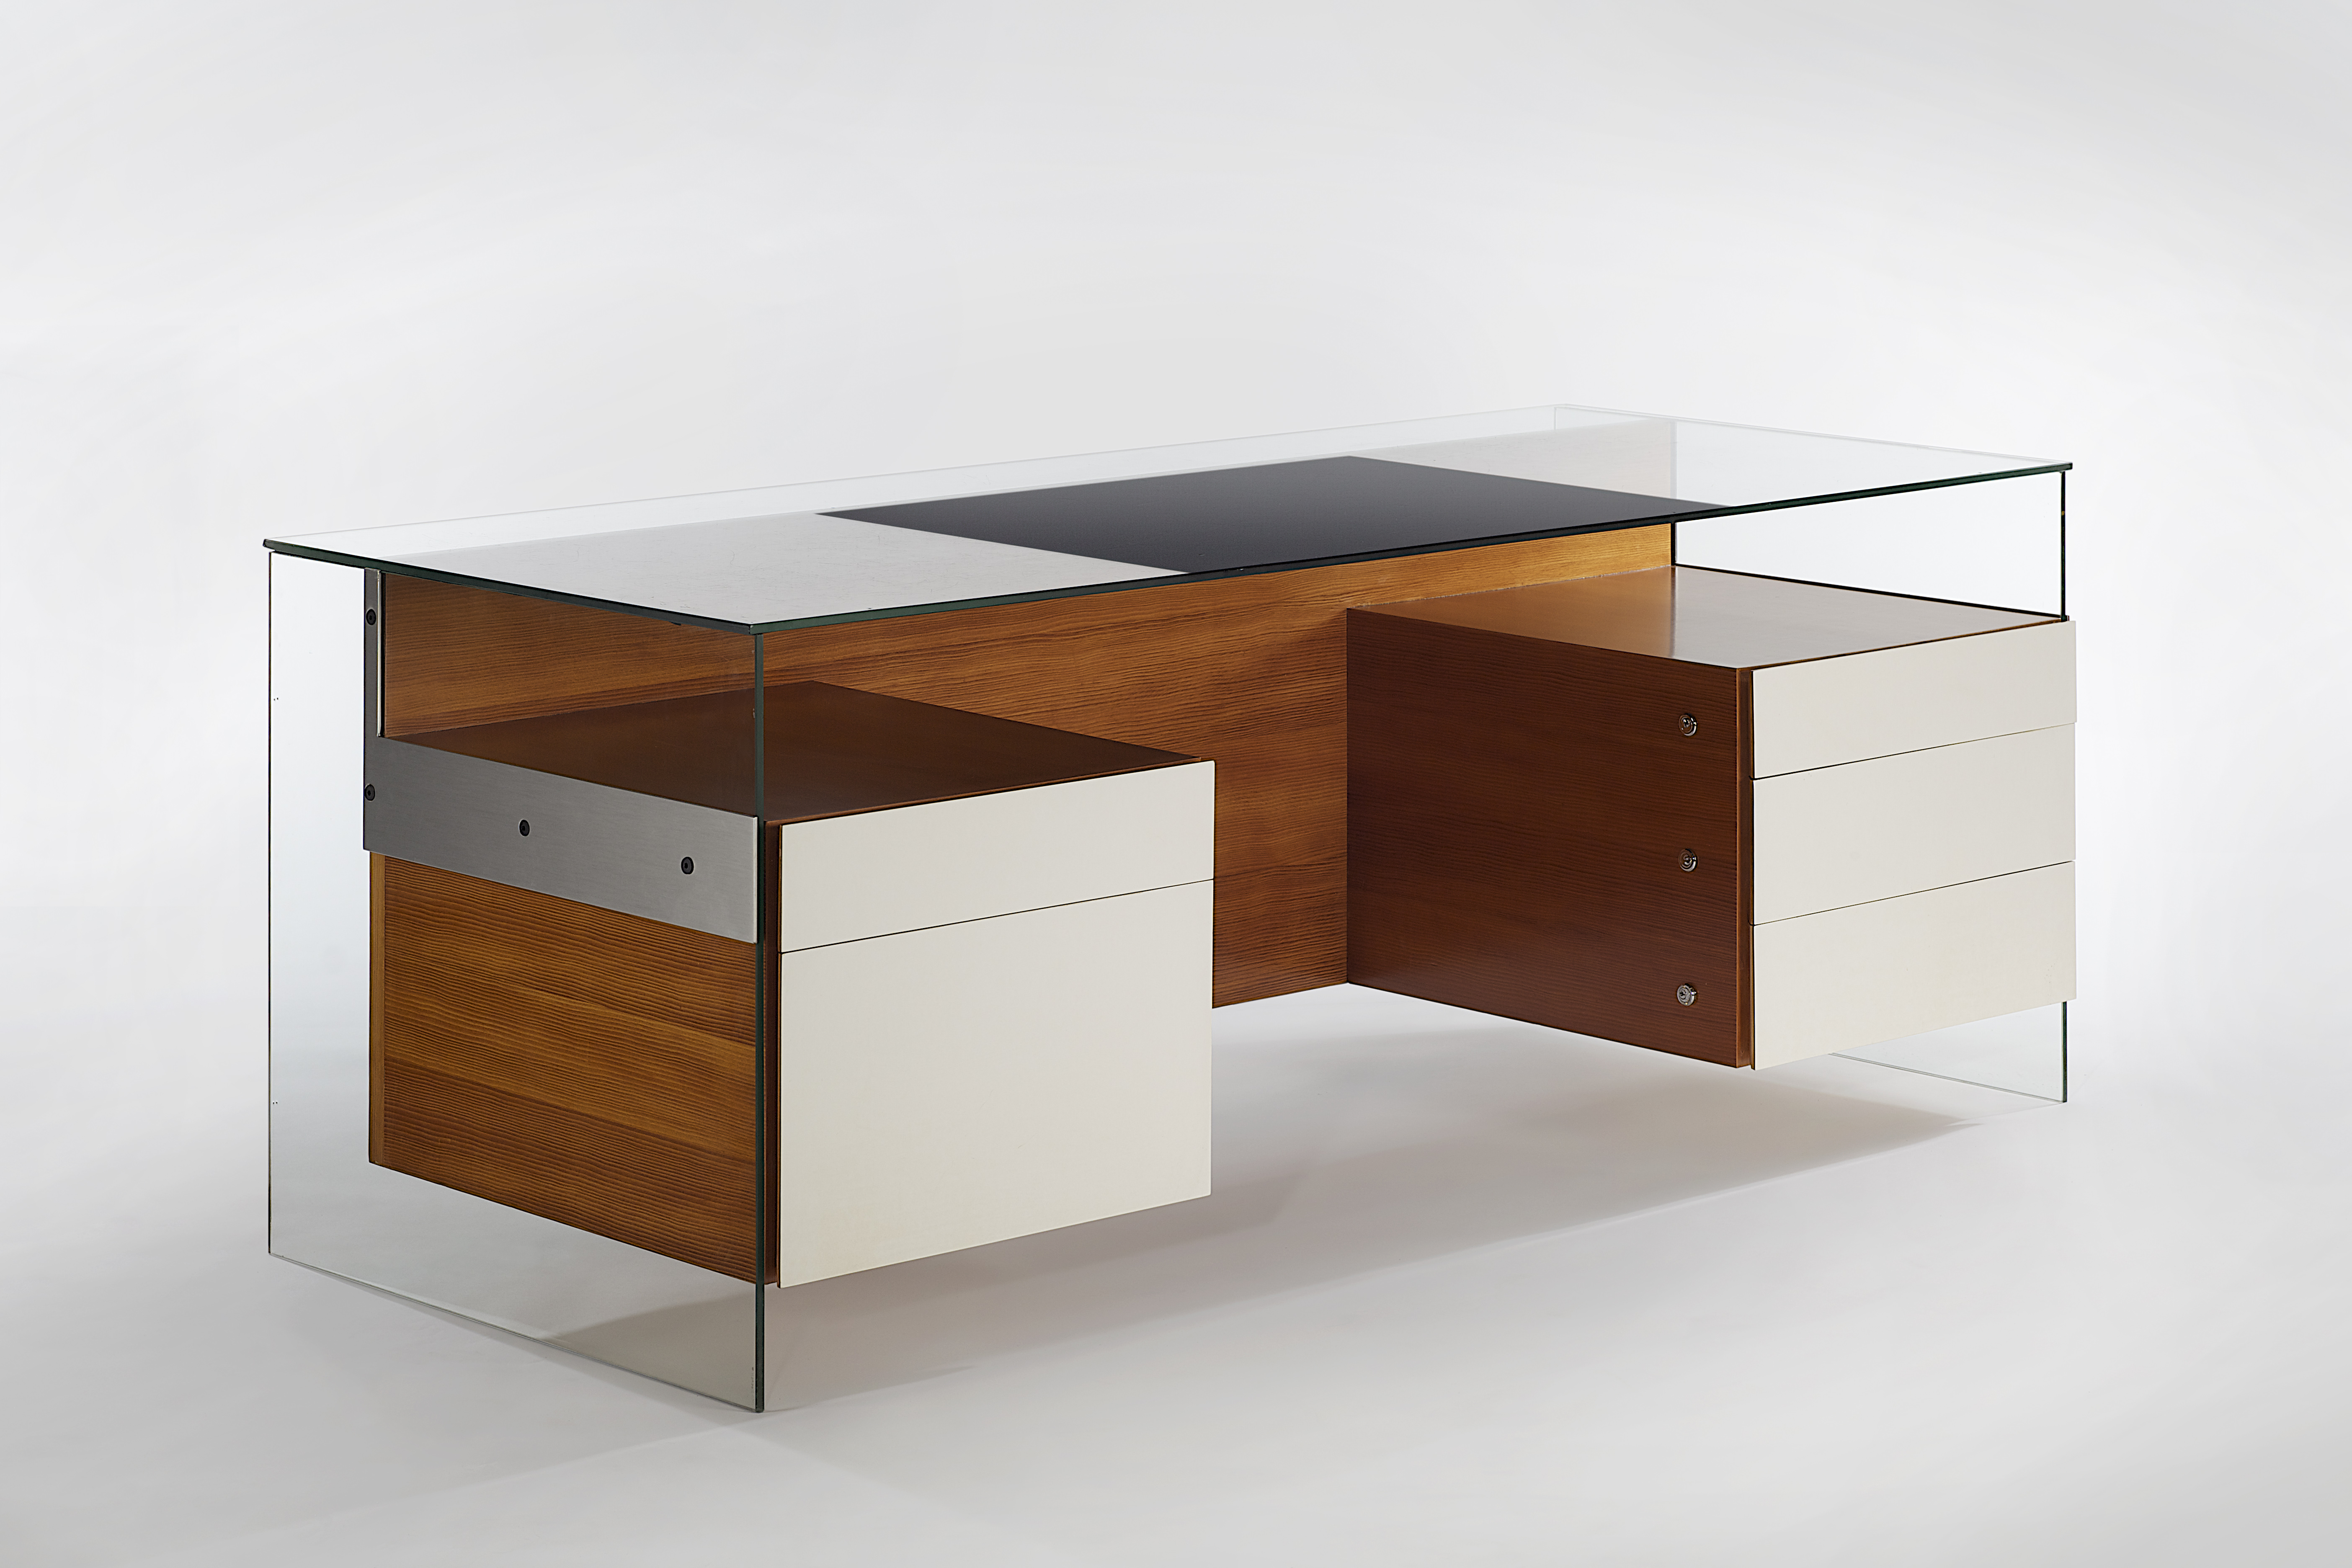 Bureau art deco et son siege d 39 apres un modele de pierre for Bureau 13 review